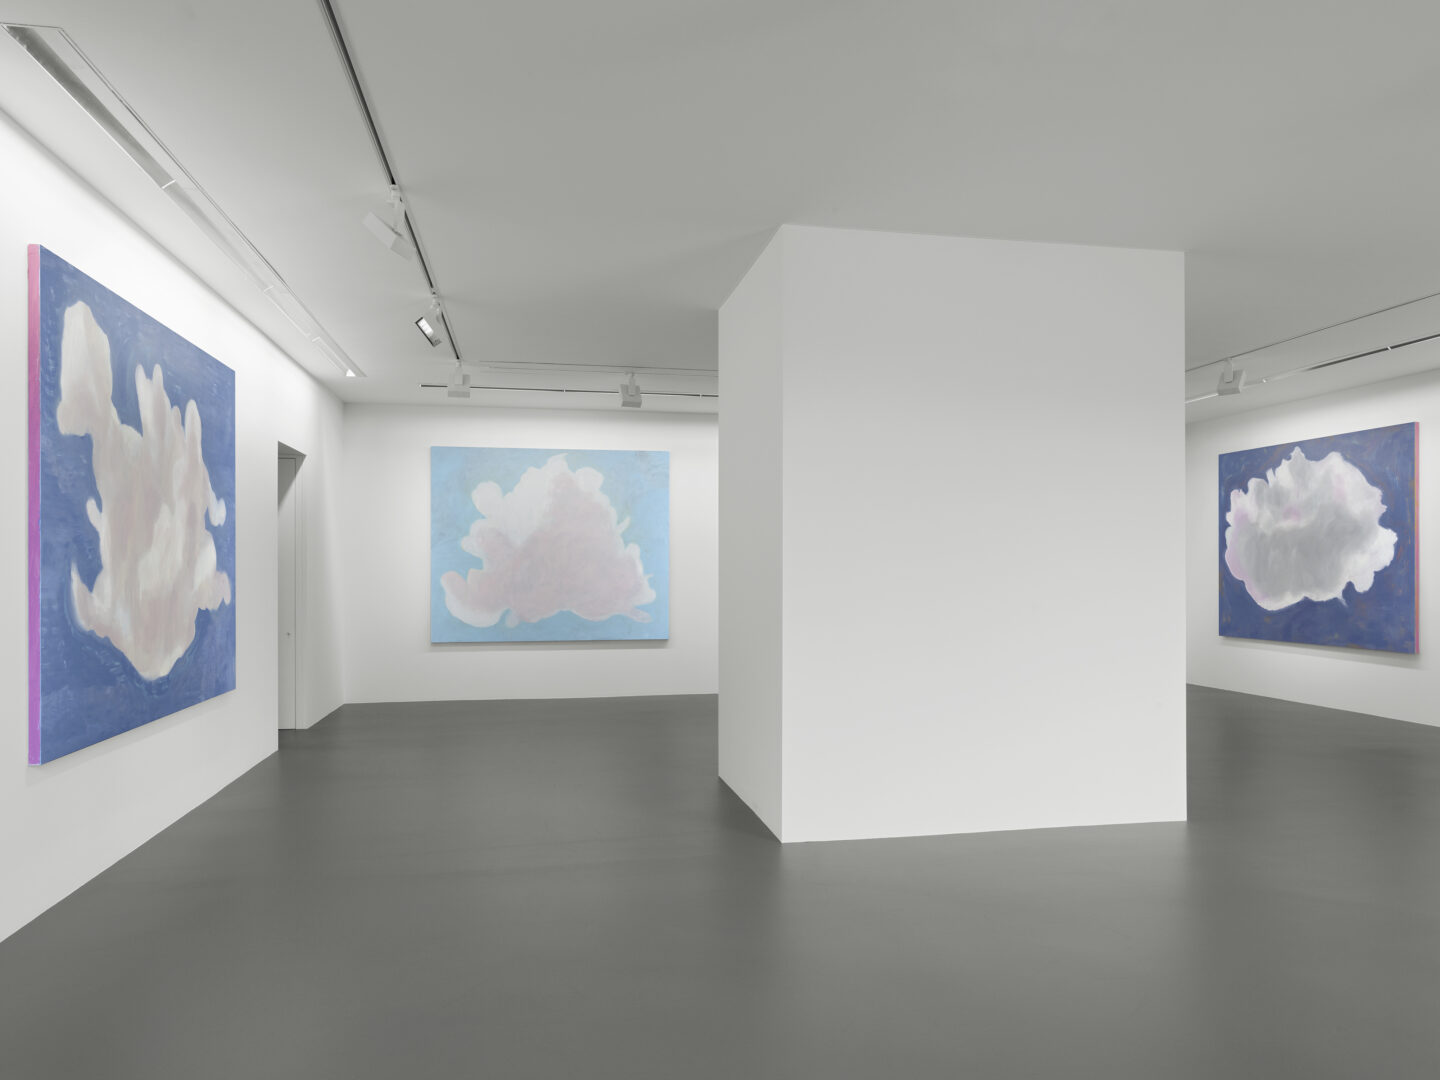 Exhibition View Francesco Clemente Soloshow «Clouds» at Vito Schnabel Gallery, St. Moritz, 2019 / © Francesco Clemente / Photo by Stefan Altenburger / Courtesy: the artist and Vito Schnabel Gallery